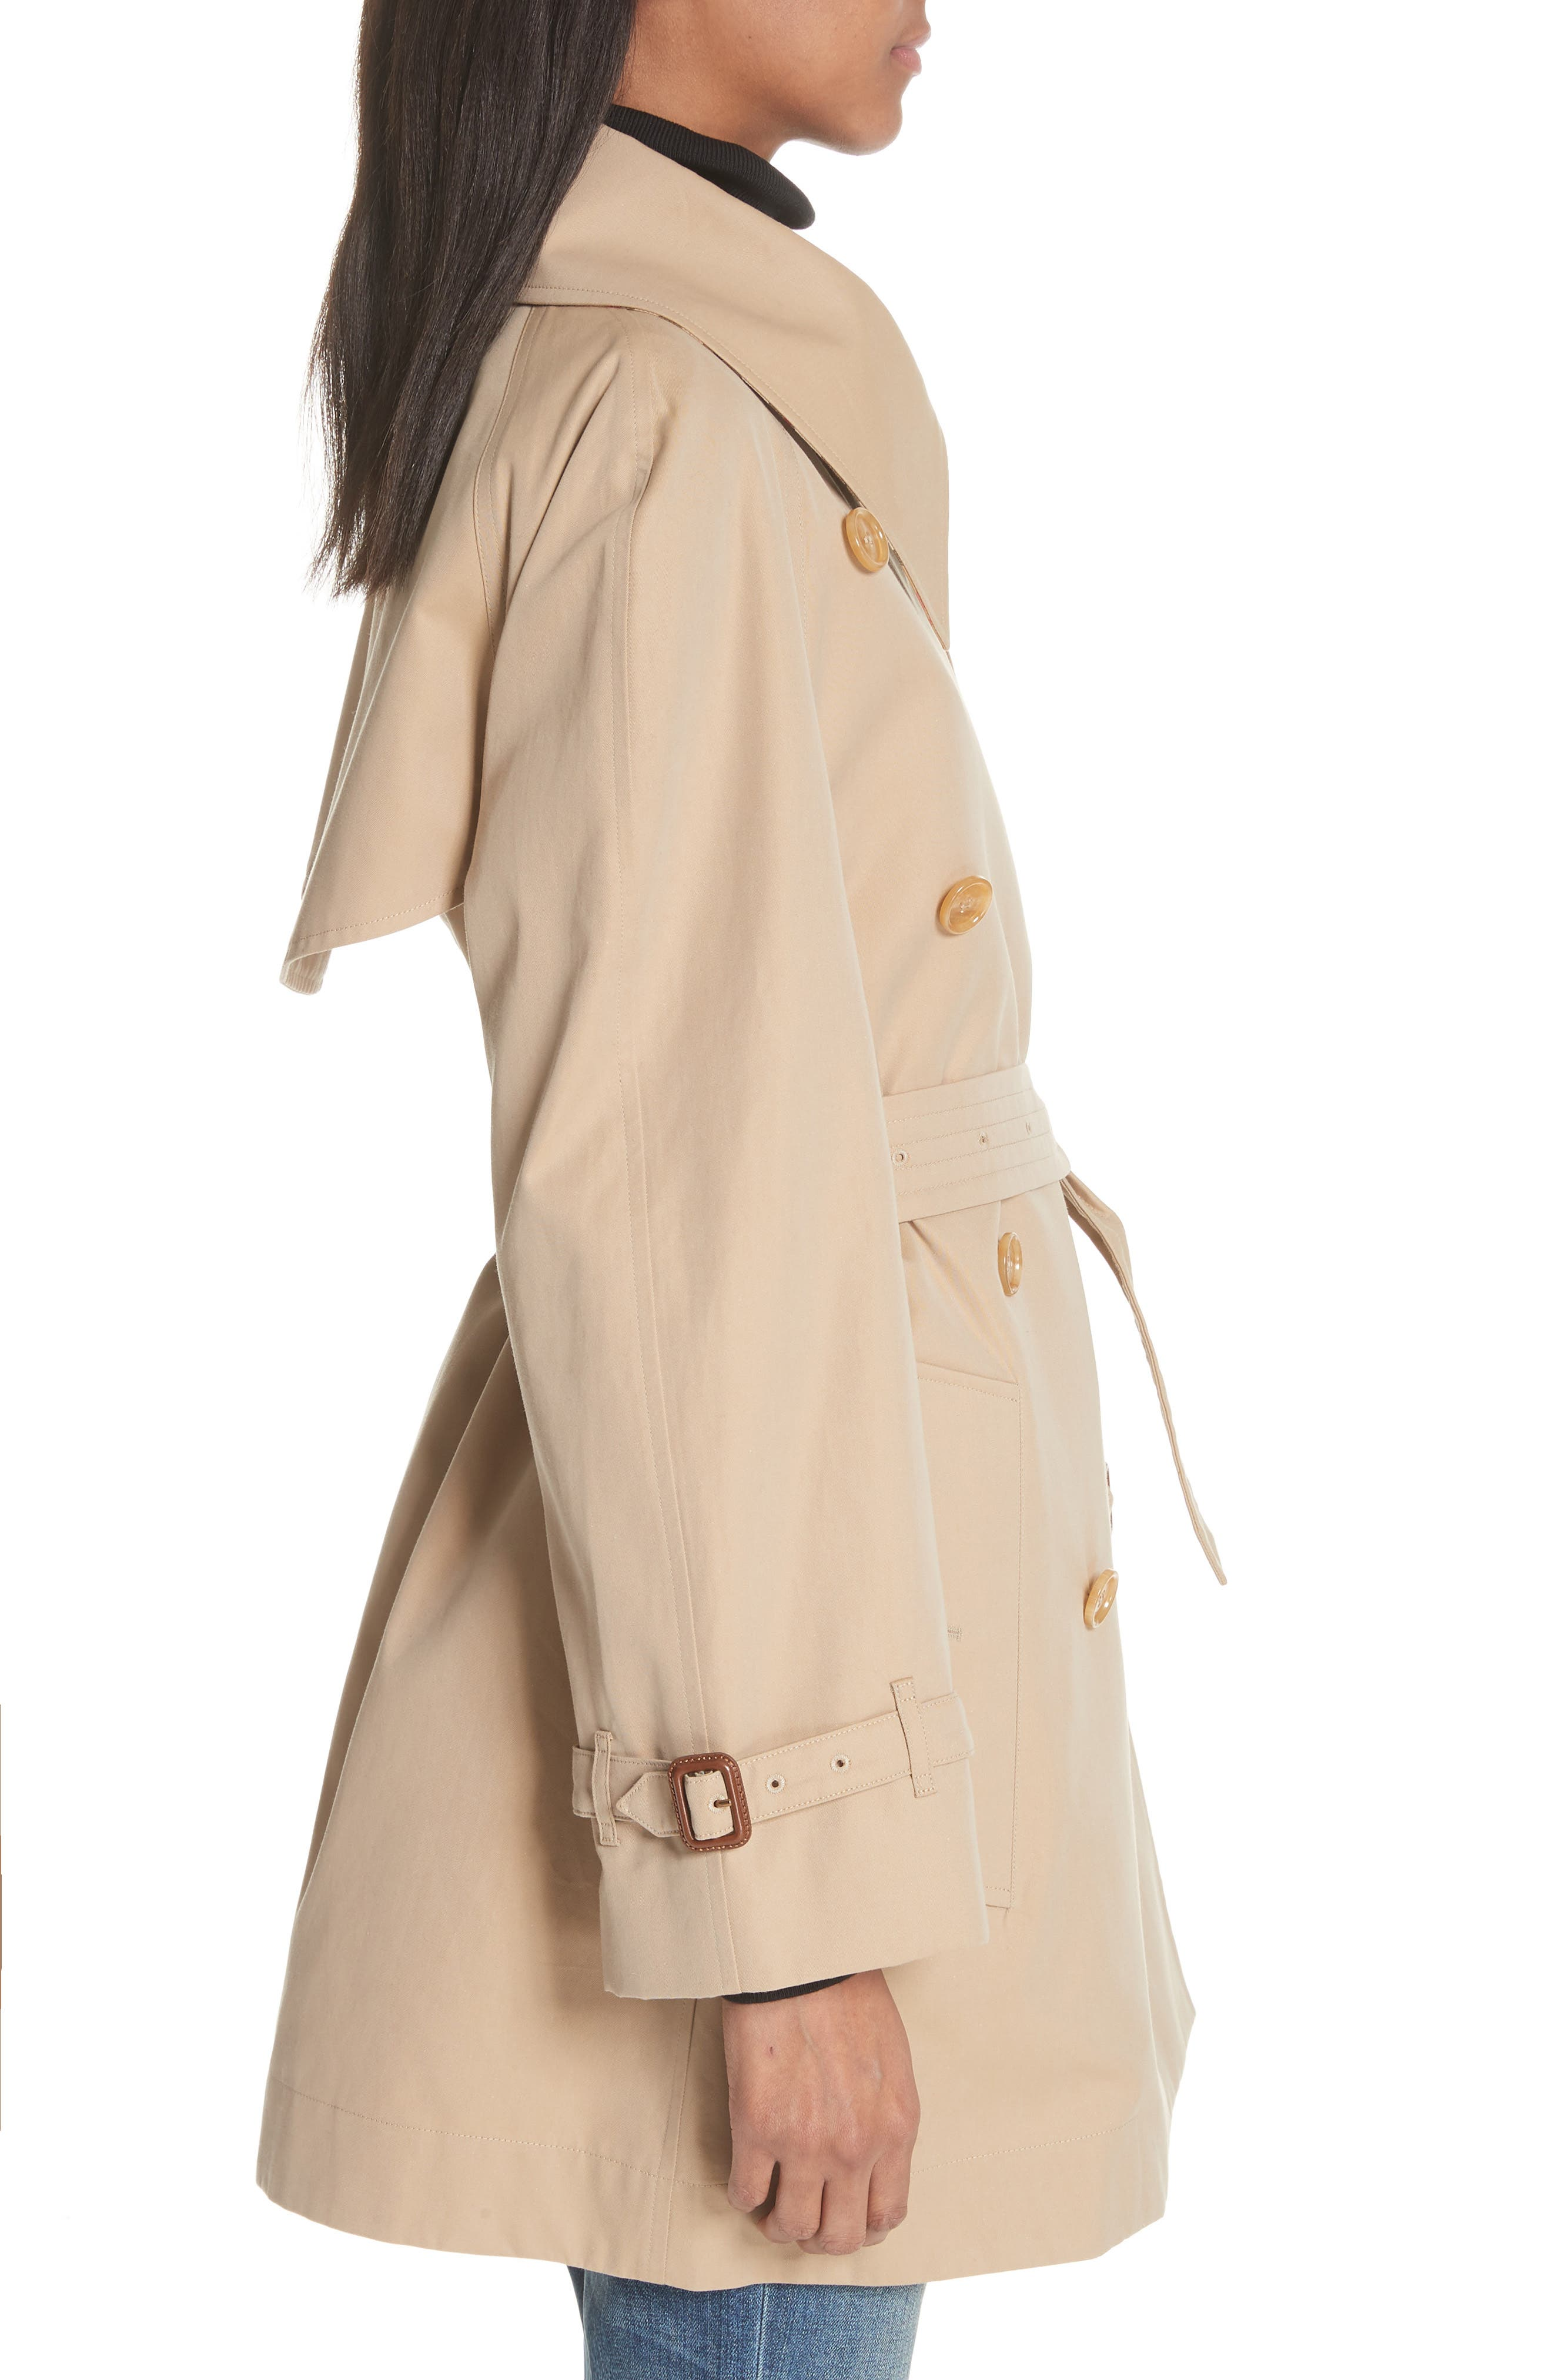 Fortingall Cotton Gabardine Trench Coat,                             Alternate thumbnail 3, color,                             255